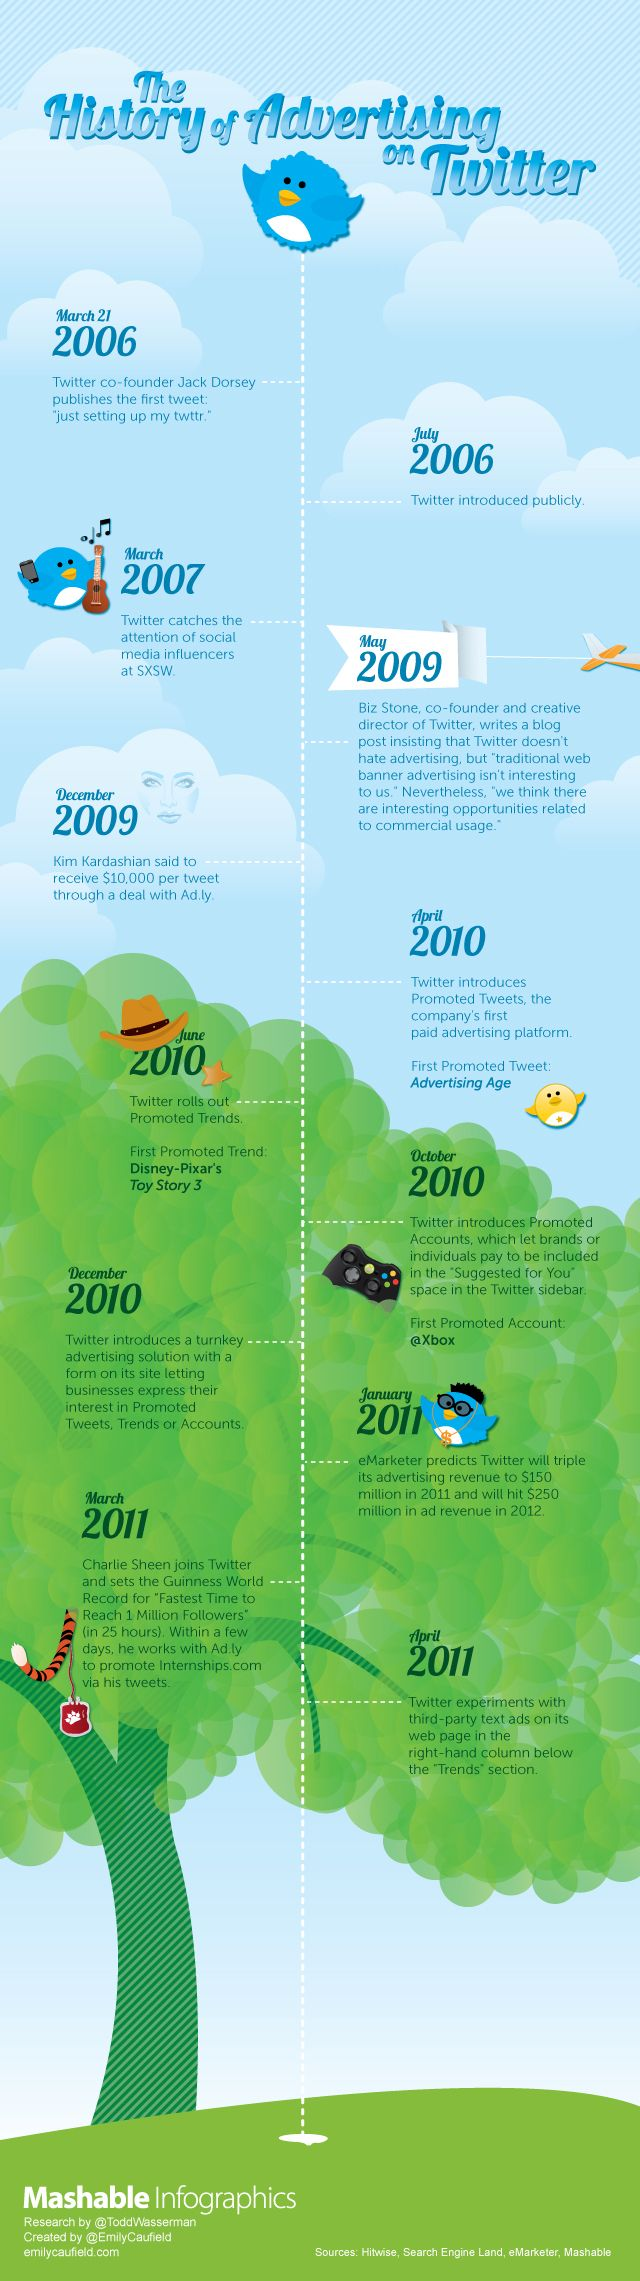 The History of Advertising on